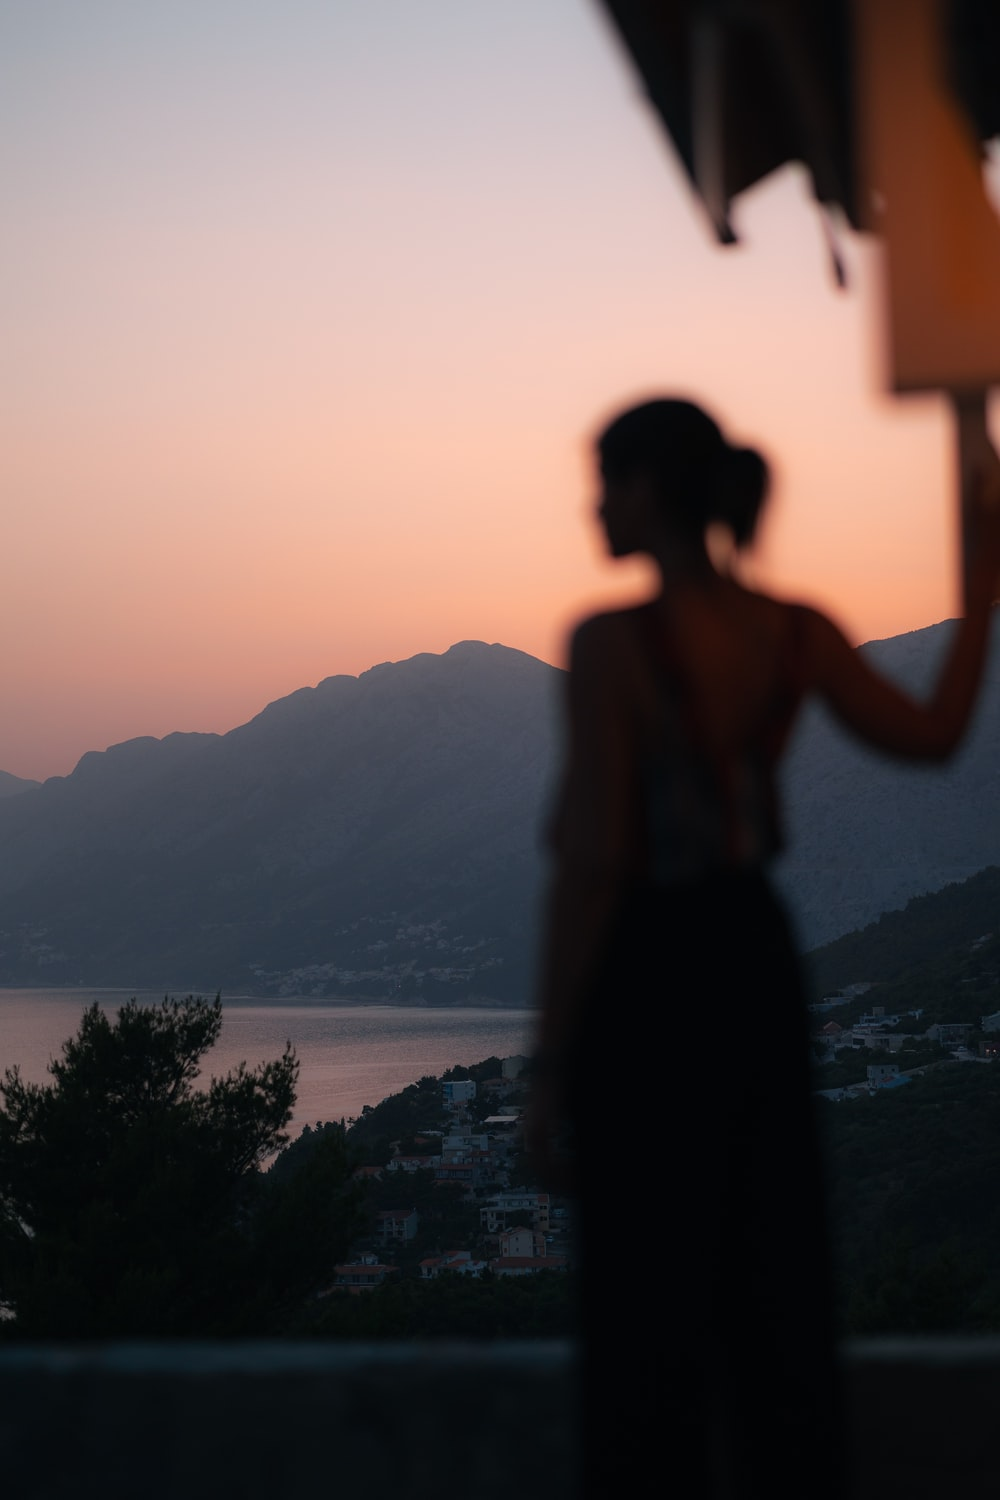 silhouette of woman standing on rock near body of water during sunset